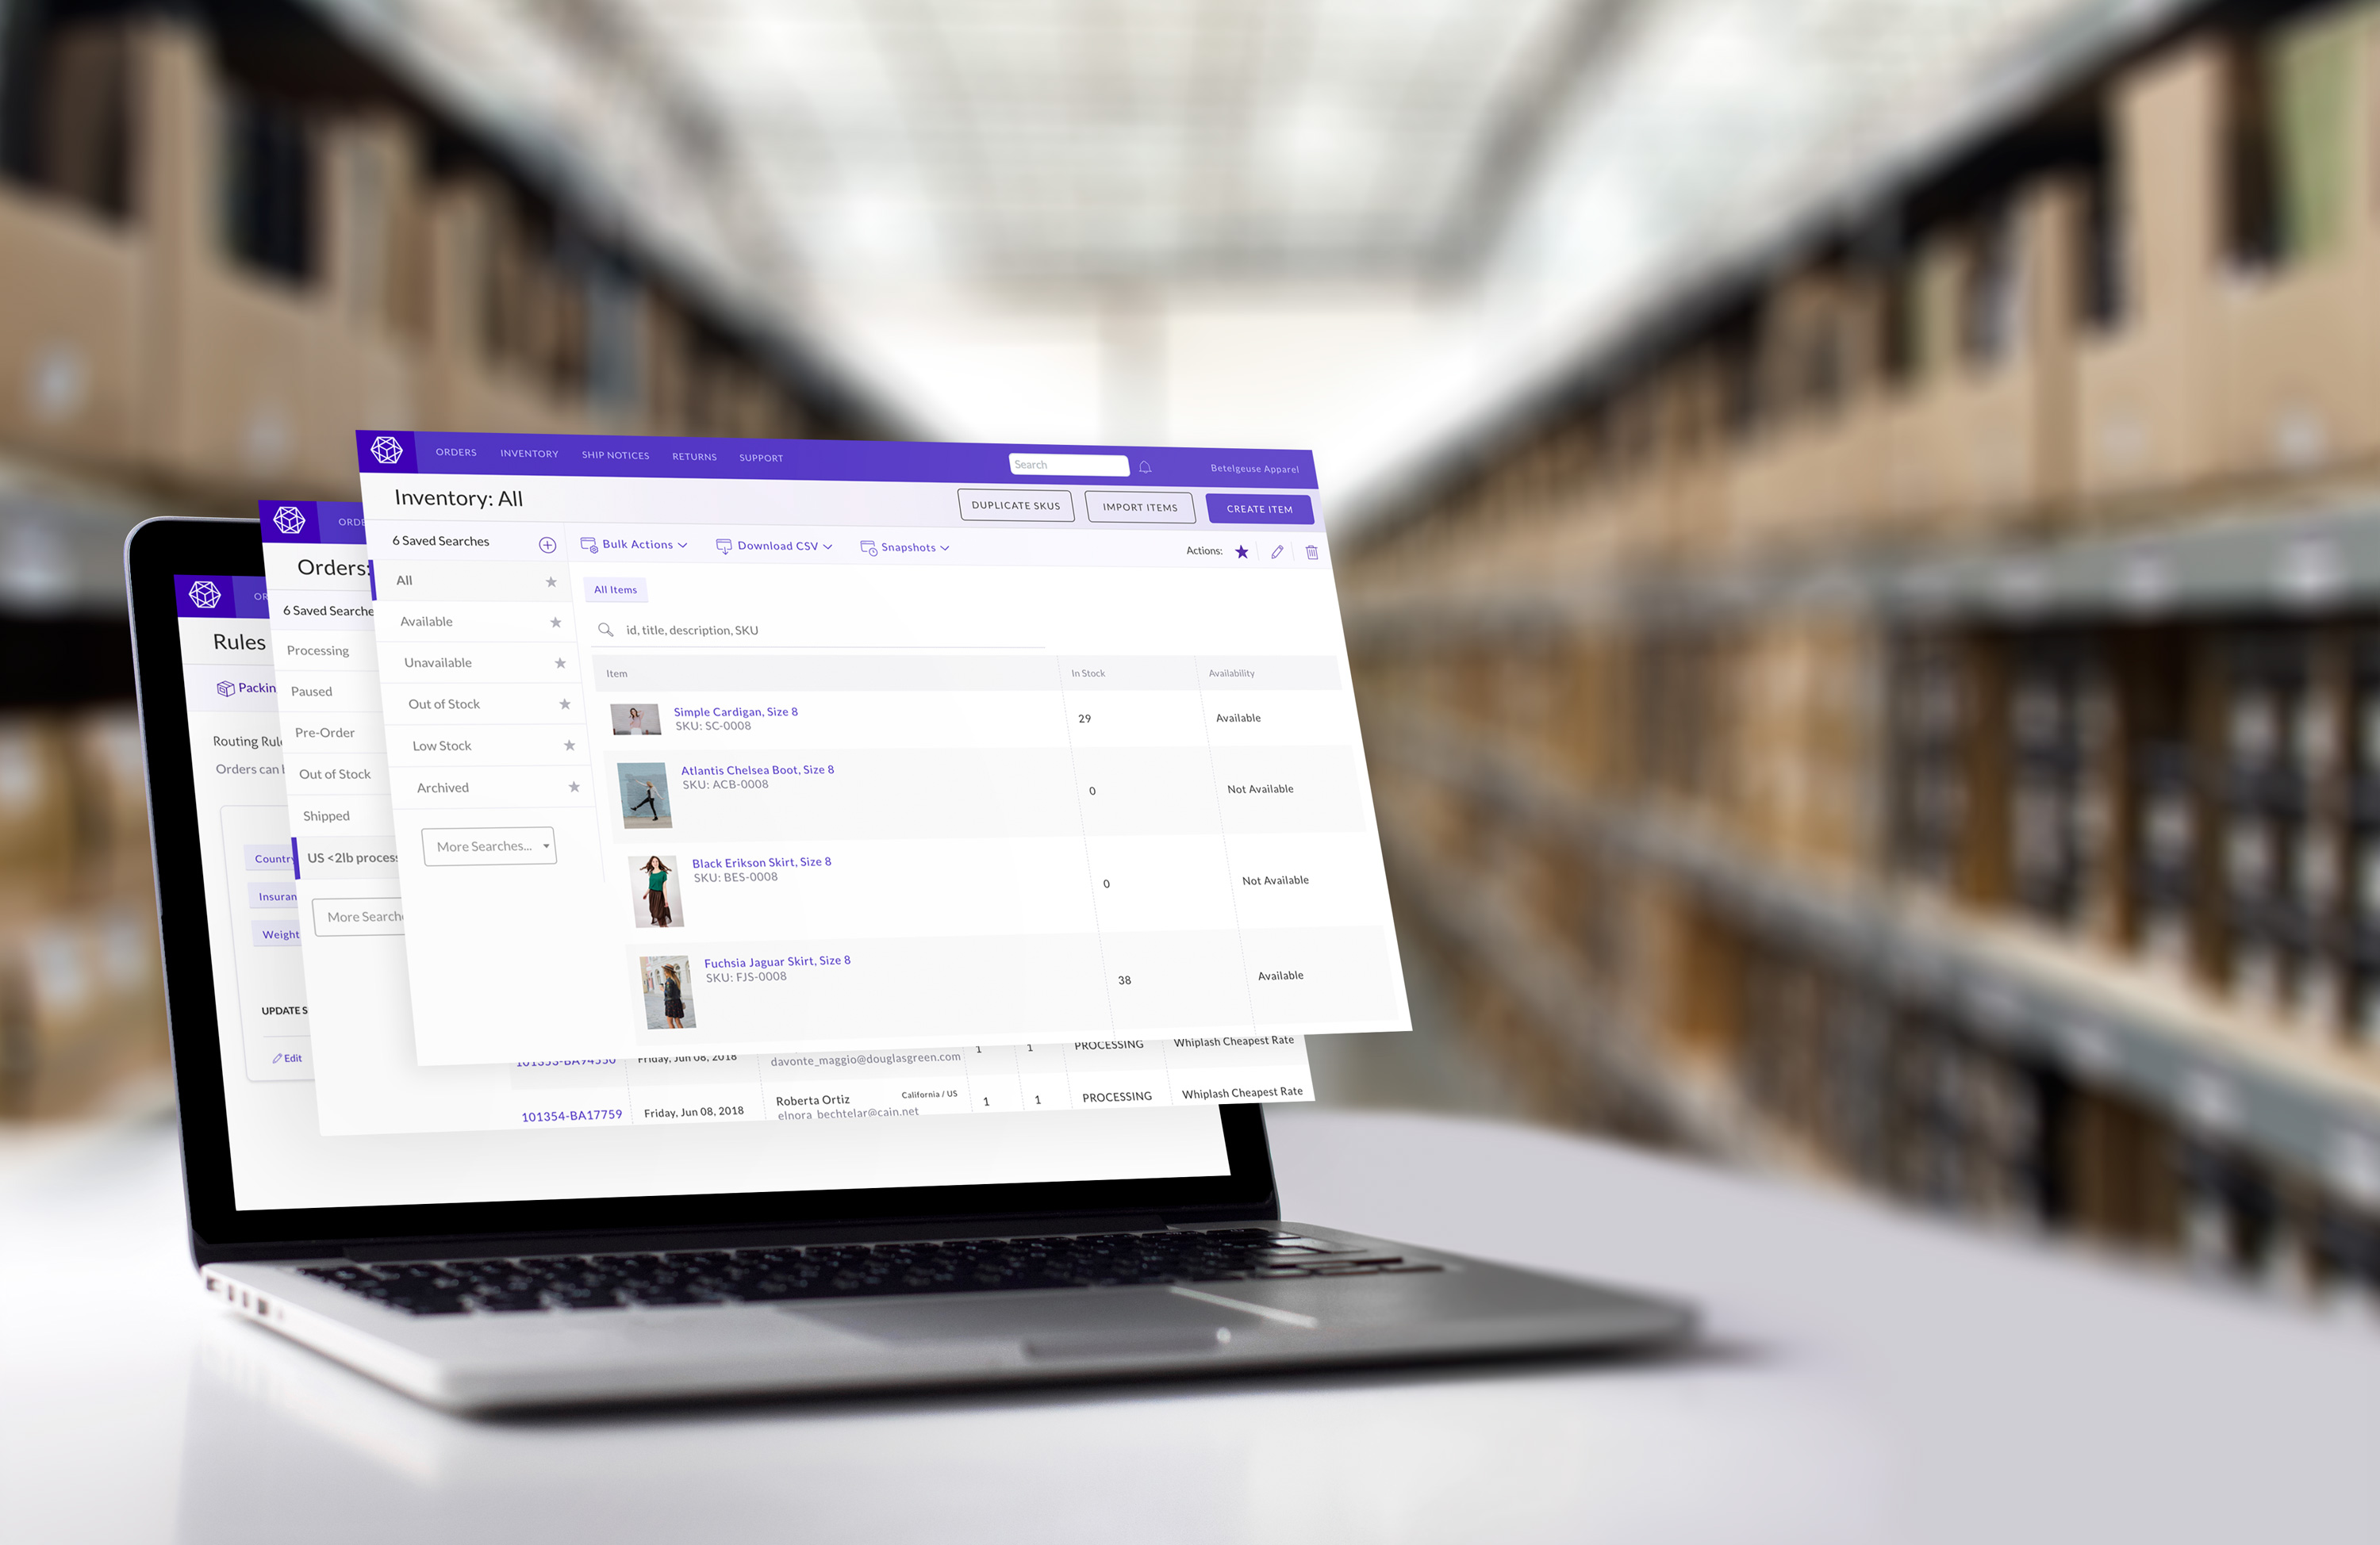 Laptop with ecommerce fulfillment screens for inventory, orders, and rules